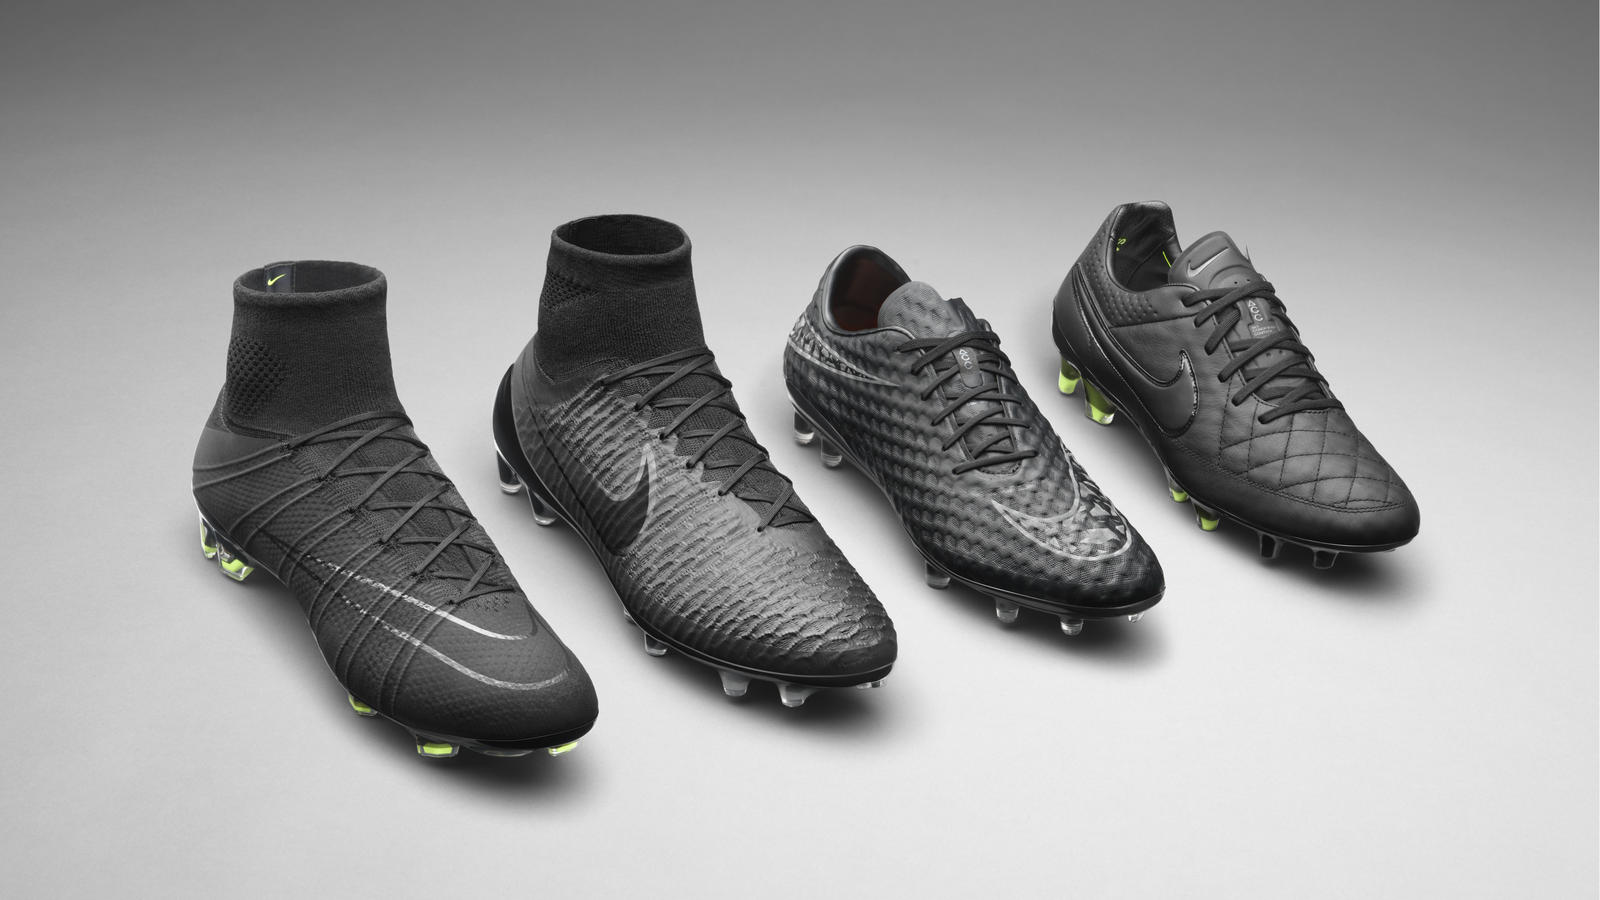 Back to Black  Nike Academy Black Pack - Nike News 3f26d50a4